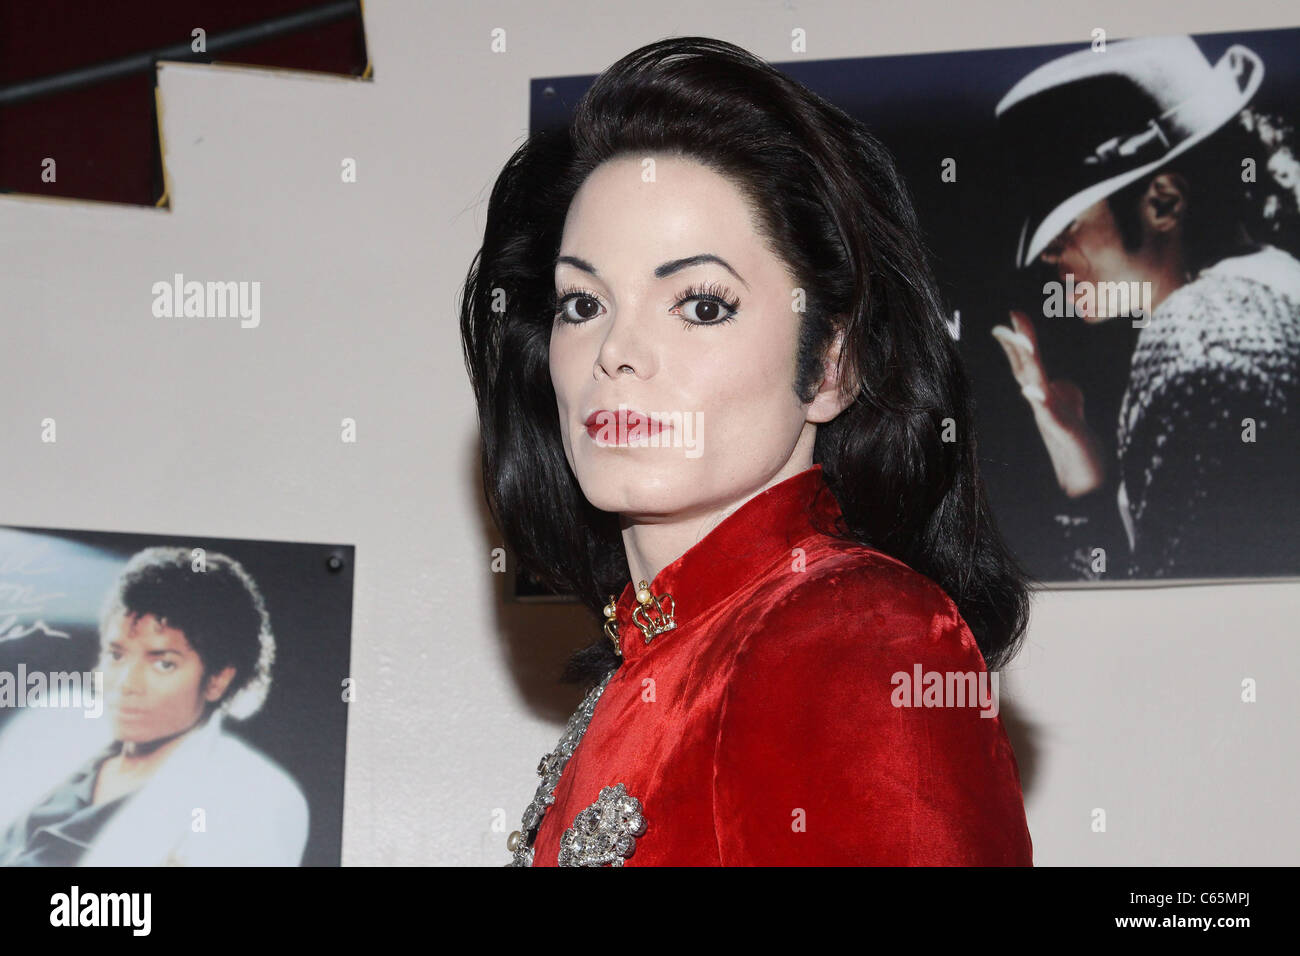 Michael jackson wax figure new york